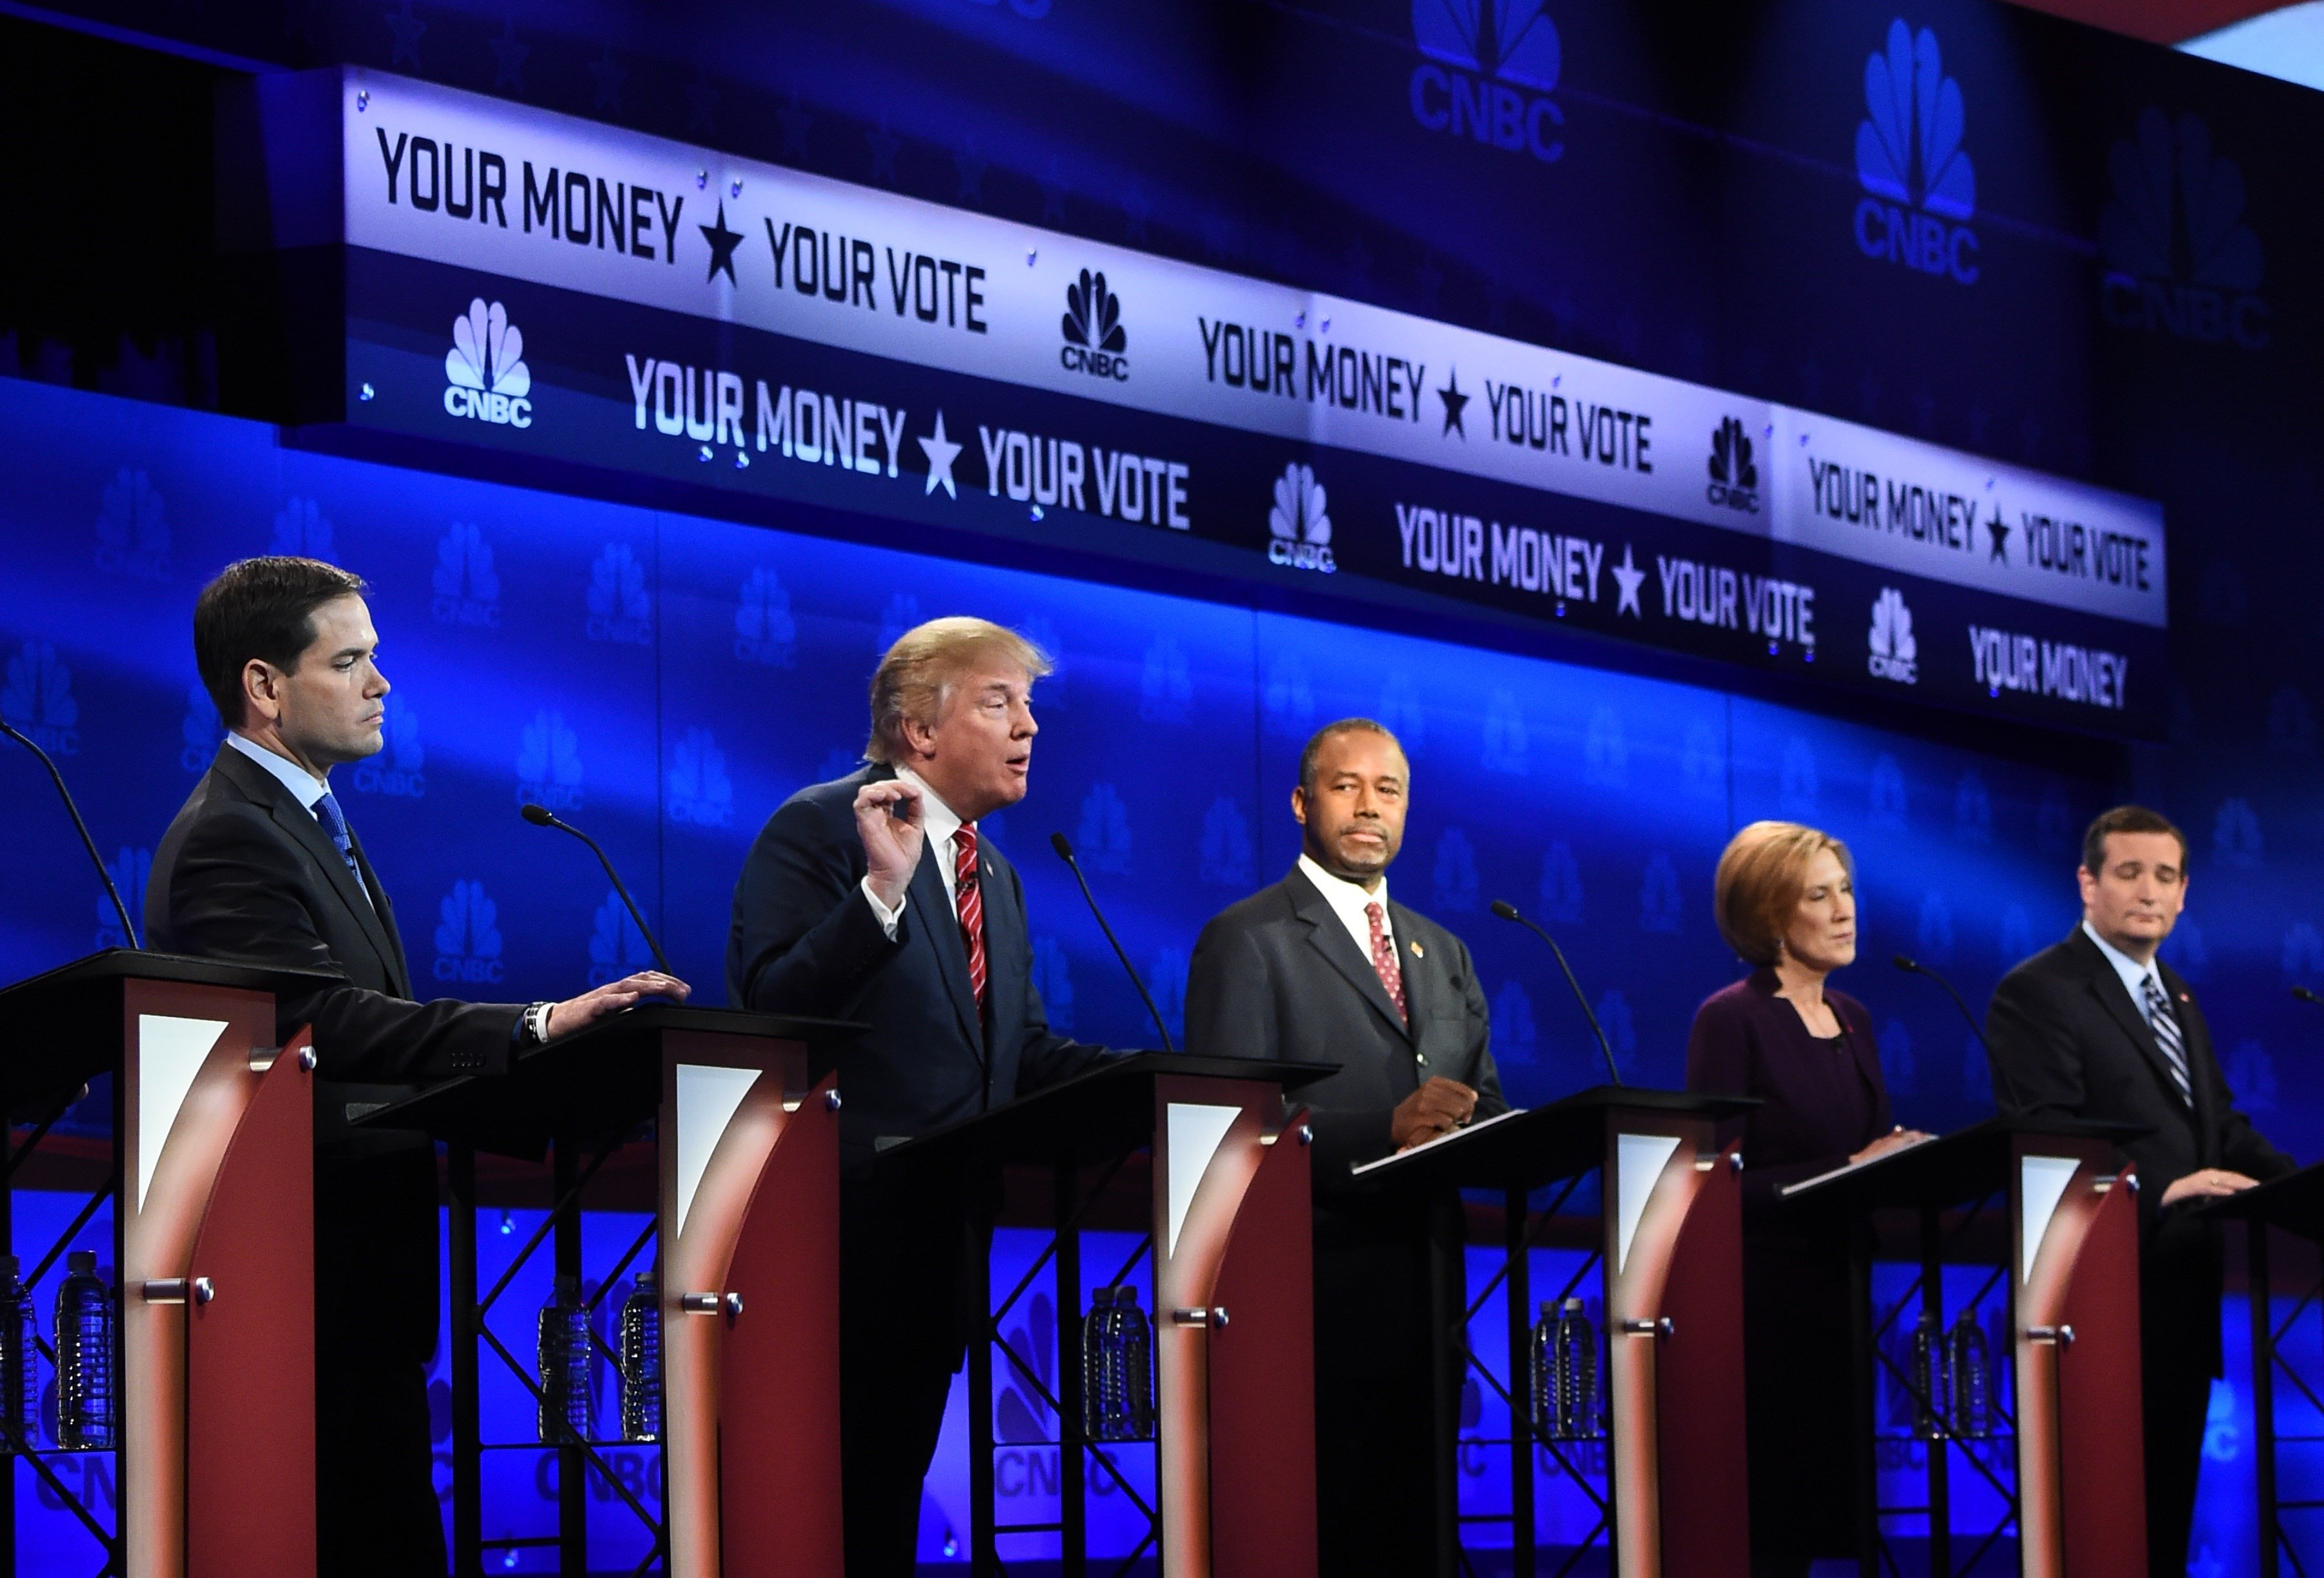 Republican Presidential hopeful Donald Trump (2L) speaks as Marco Rubio (L), Ben Carson (C), Carly Fiorina (2R), and Ted Cruz look on during the CNBC Republican Presidential Debate on Oct. 28, 2015 at the Coors Event Center at the University of Colorado in Boulder, Colo.